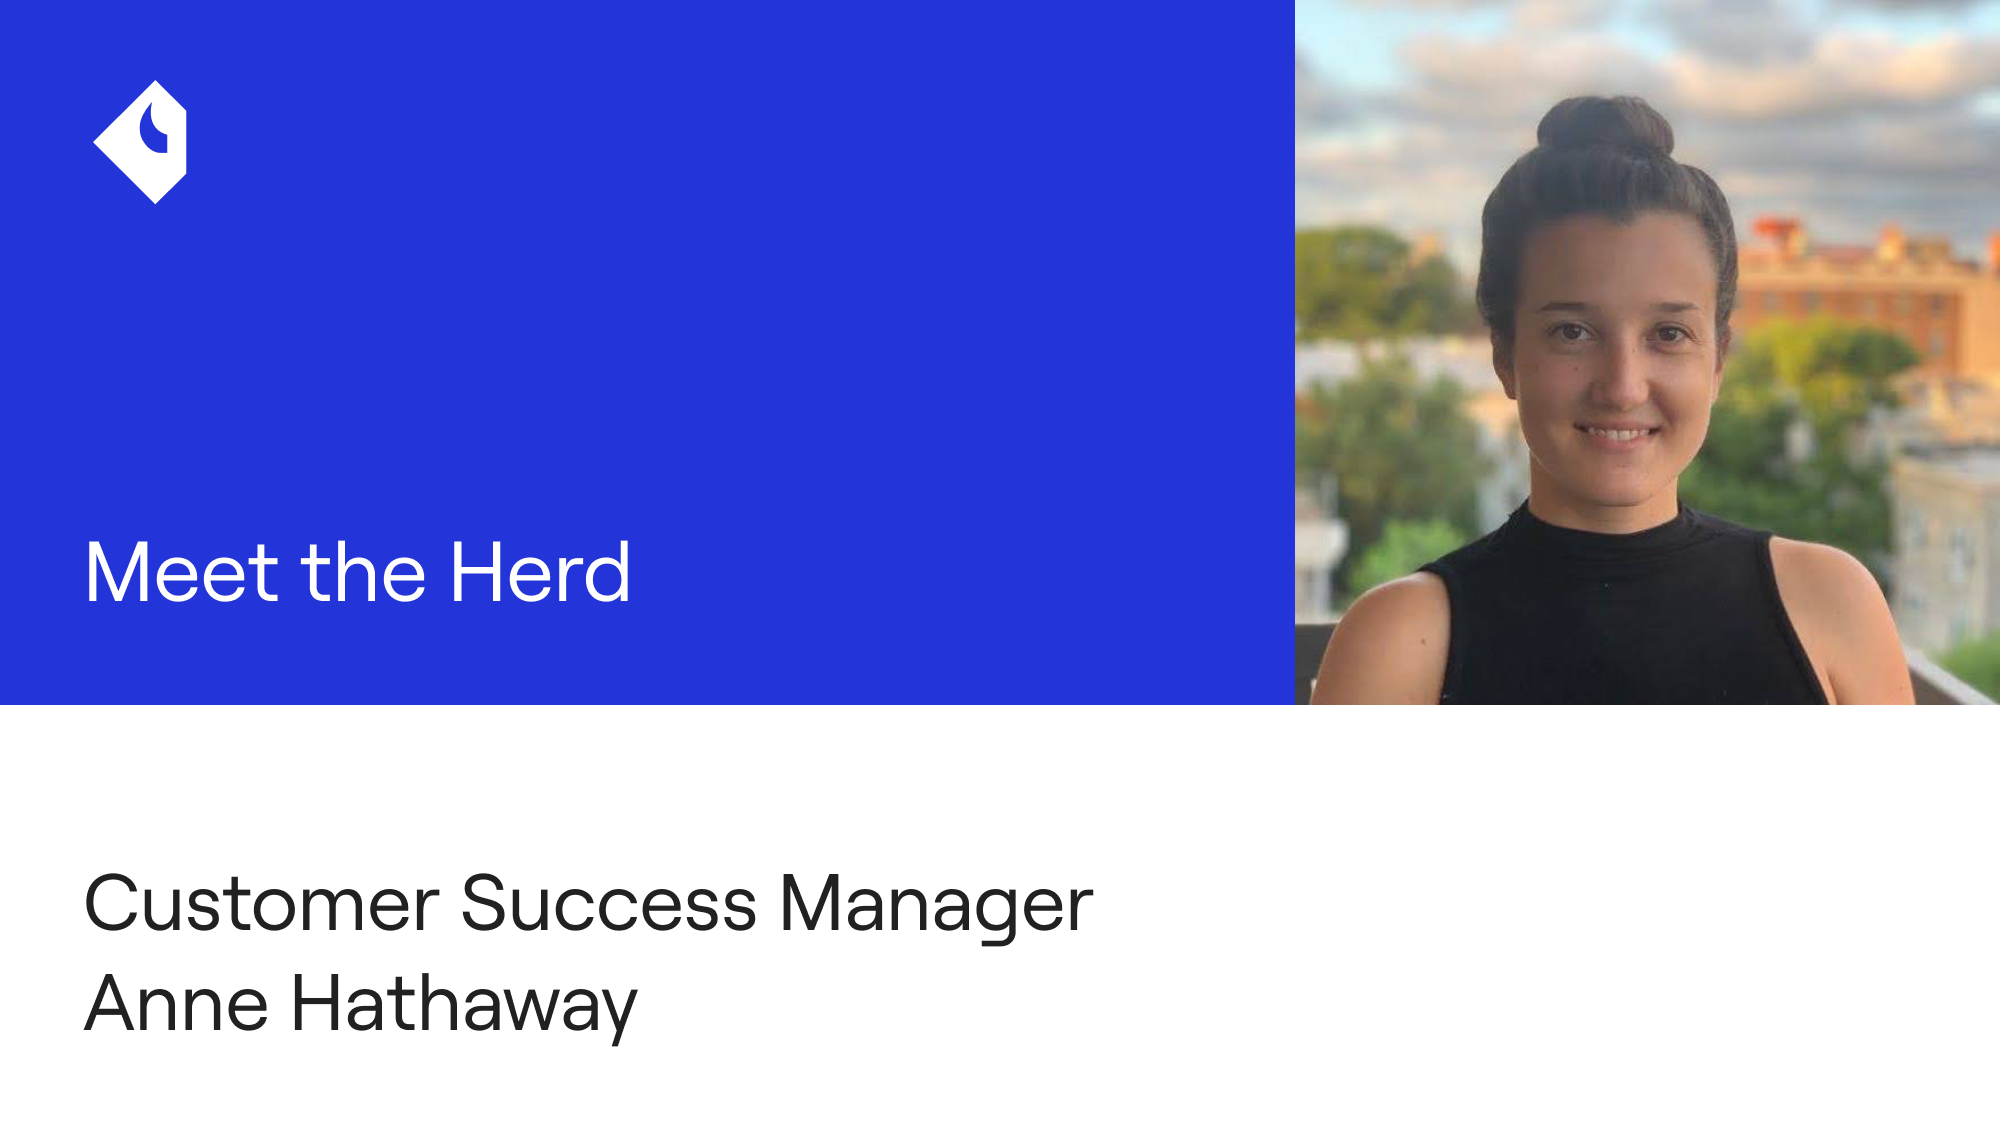 Meet the herd: Customer Success Manager Anne Hathaway